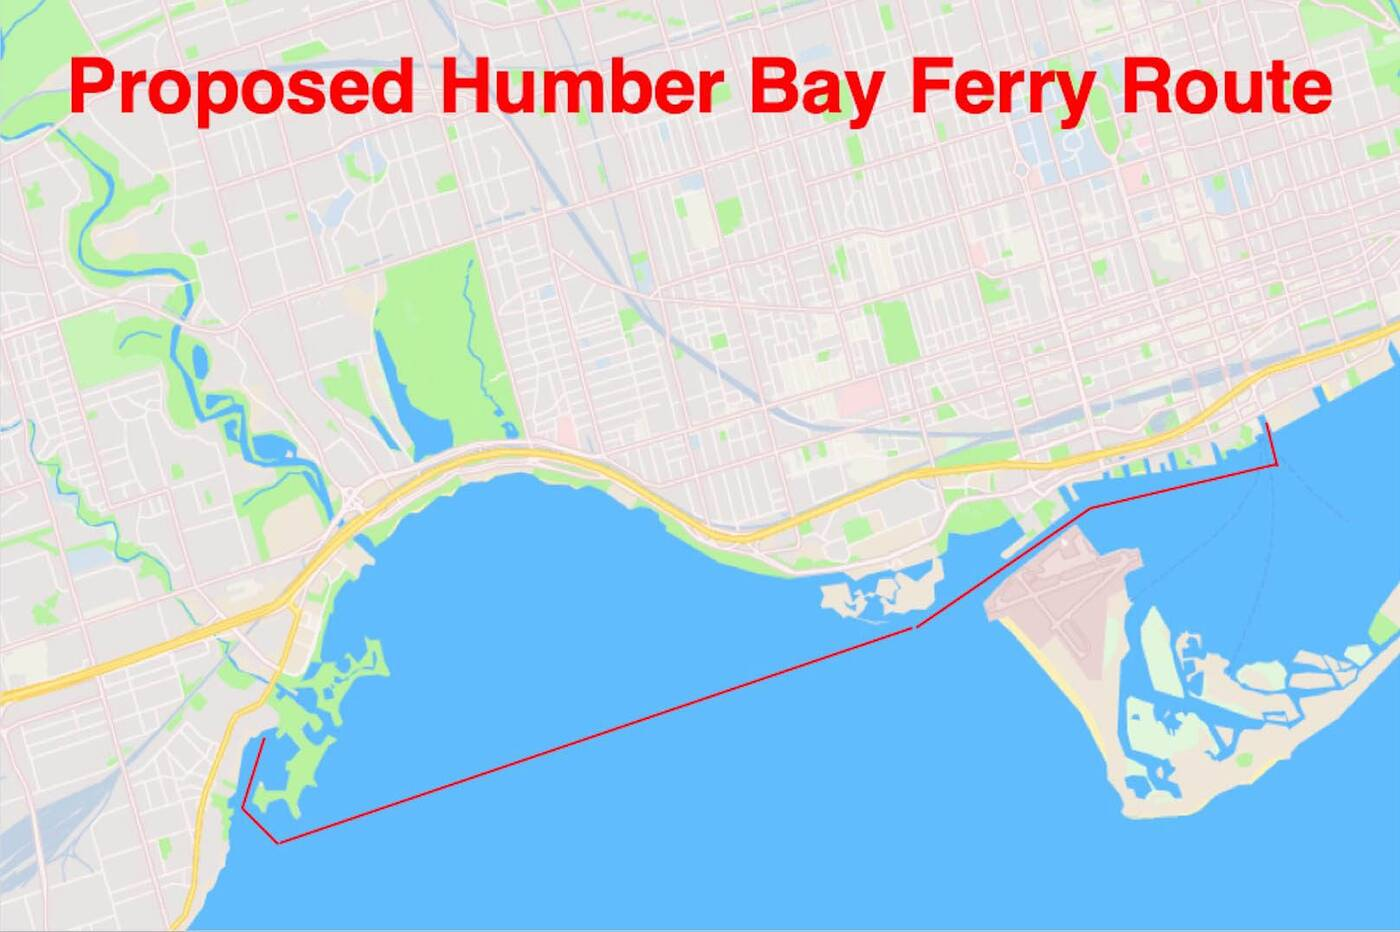 humber bay ferry